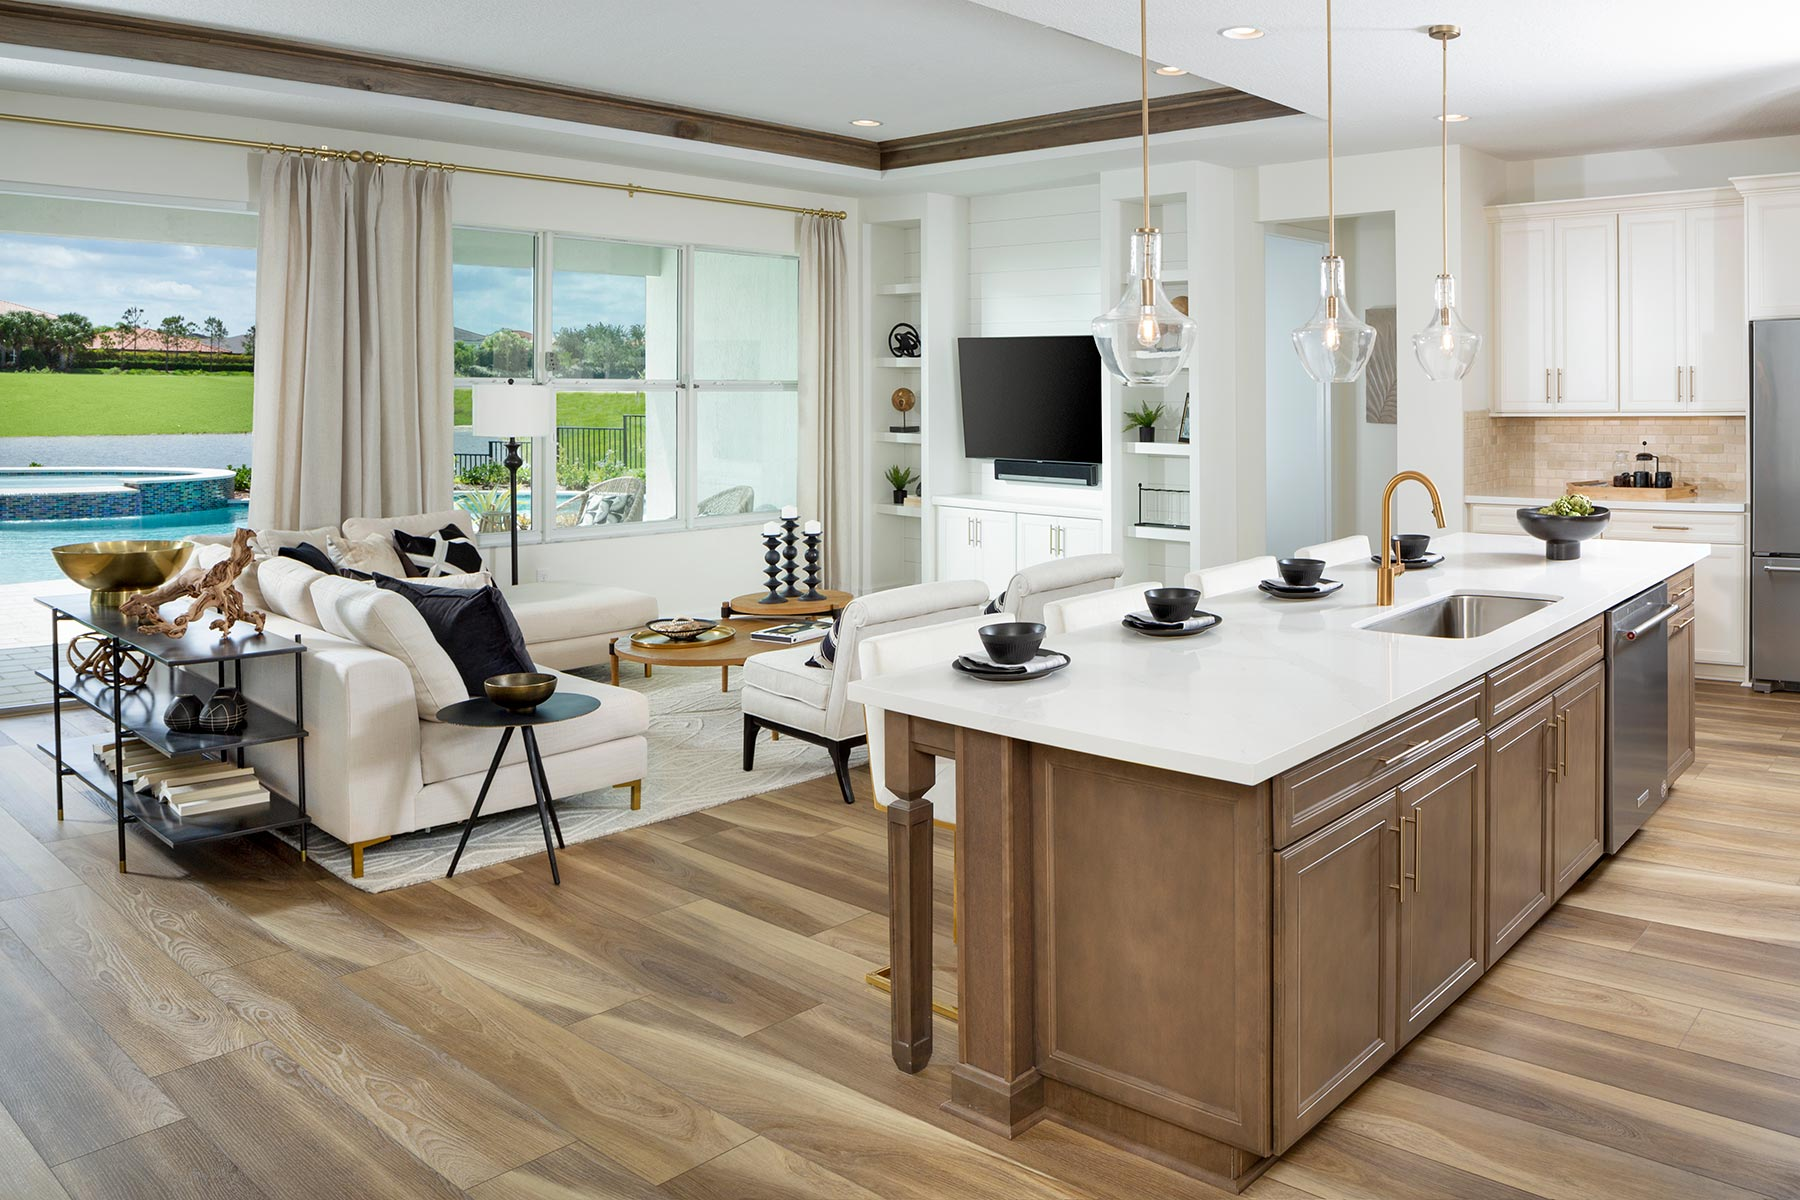 Dahlia Plan Kitchen at Tradition - Emery in Port St. Lucie Florida by Mattamy Homes